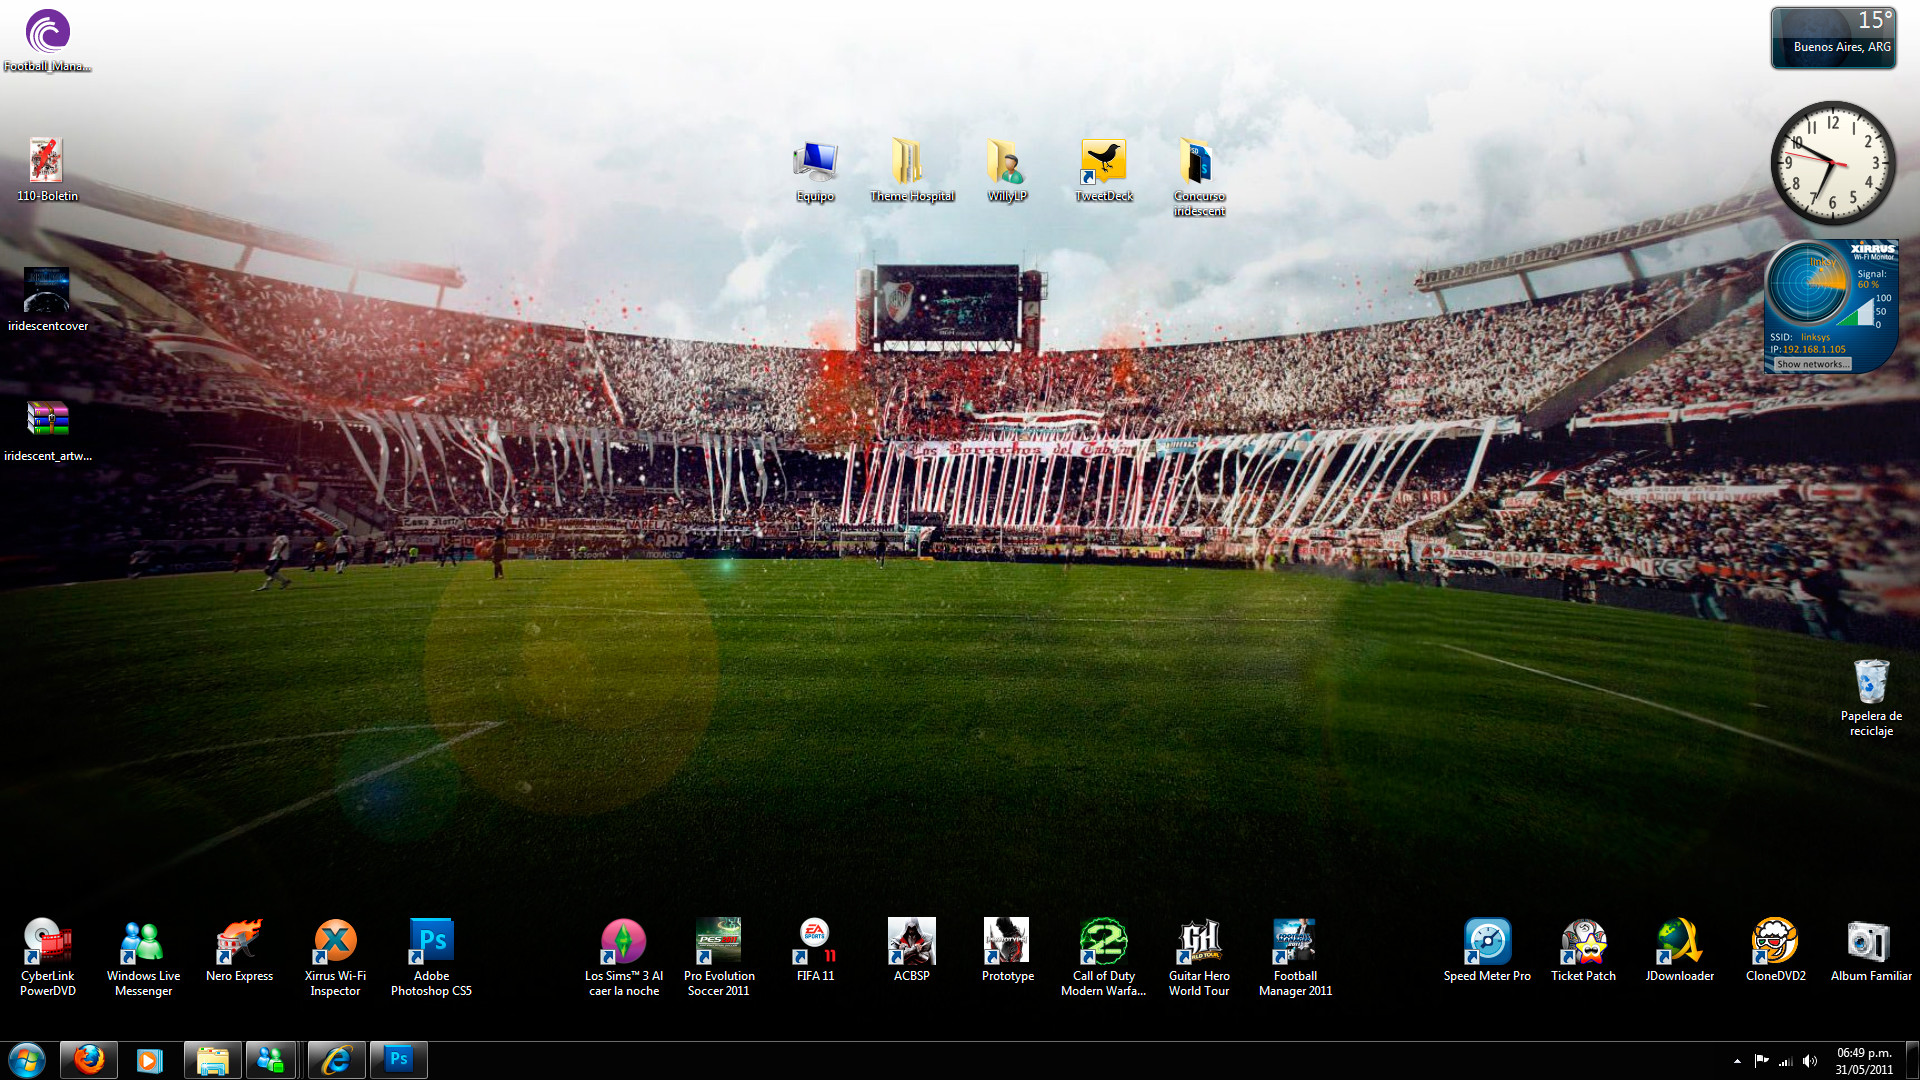 1920x1080 Wallpaper River Plate by xtrlp Wallpaper River Plate by xtrlp